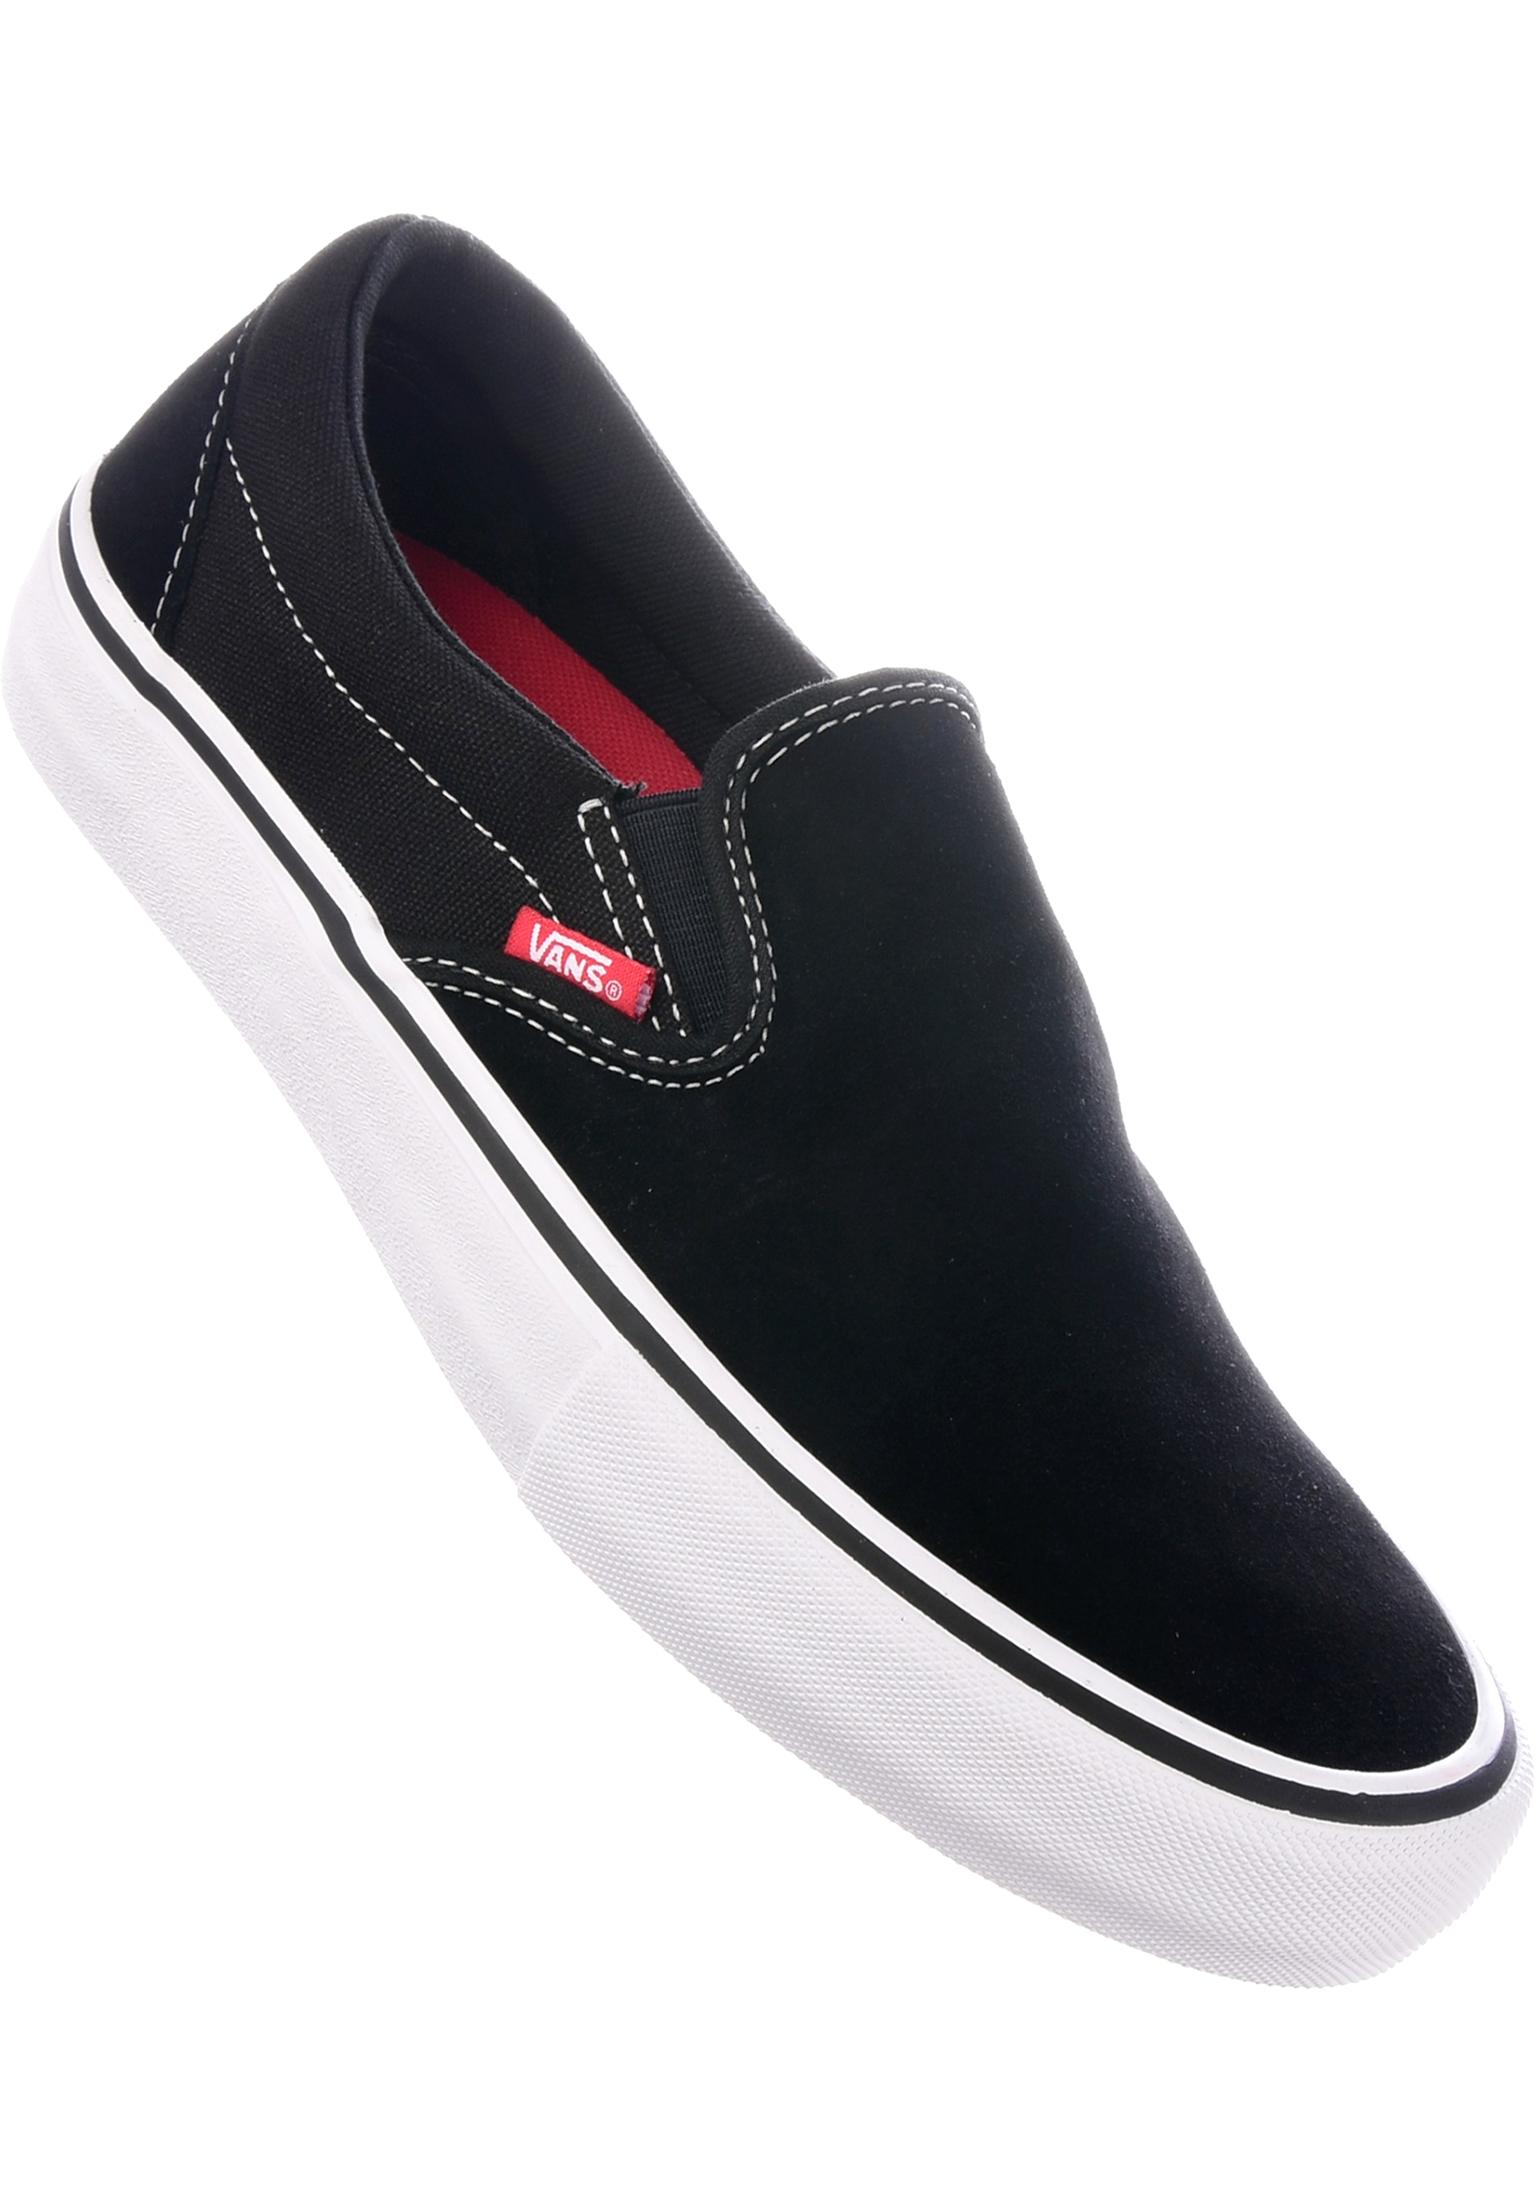 b276f64a1e87a9 Slip-On Pro Vans All Shoes in black-white-gum for Men